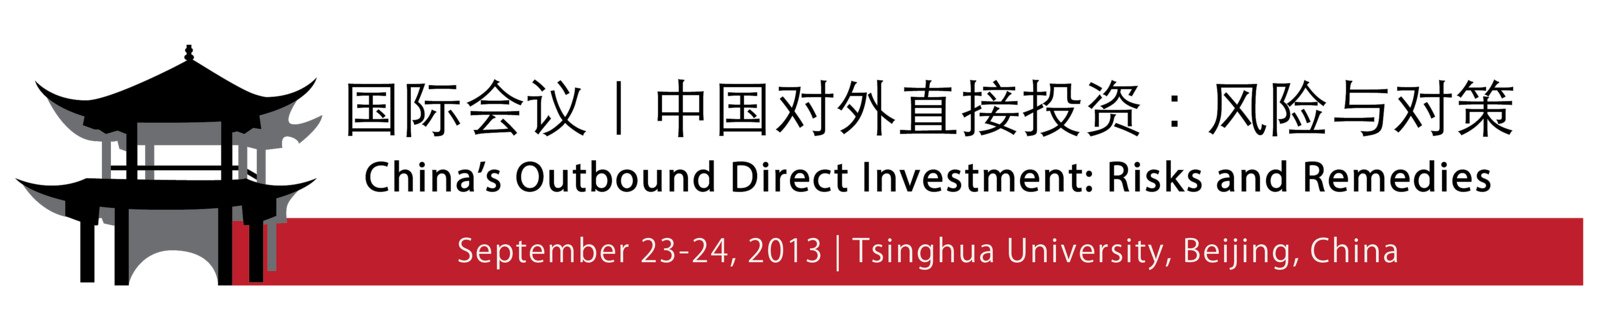 China's Outbound Direct Investment: Risks and Remedies. September 23-24, 2013. Tsinghua University, Beijing, China